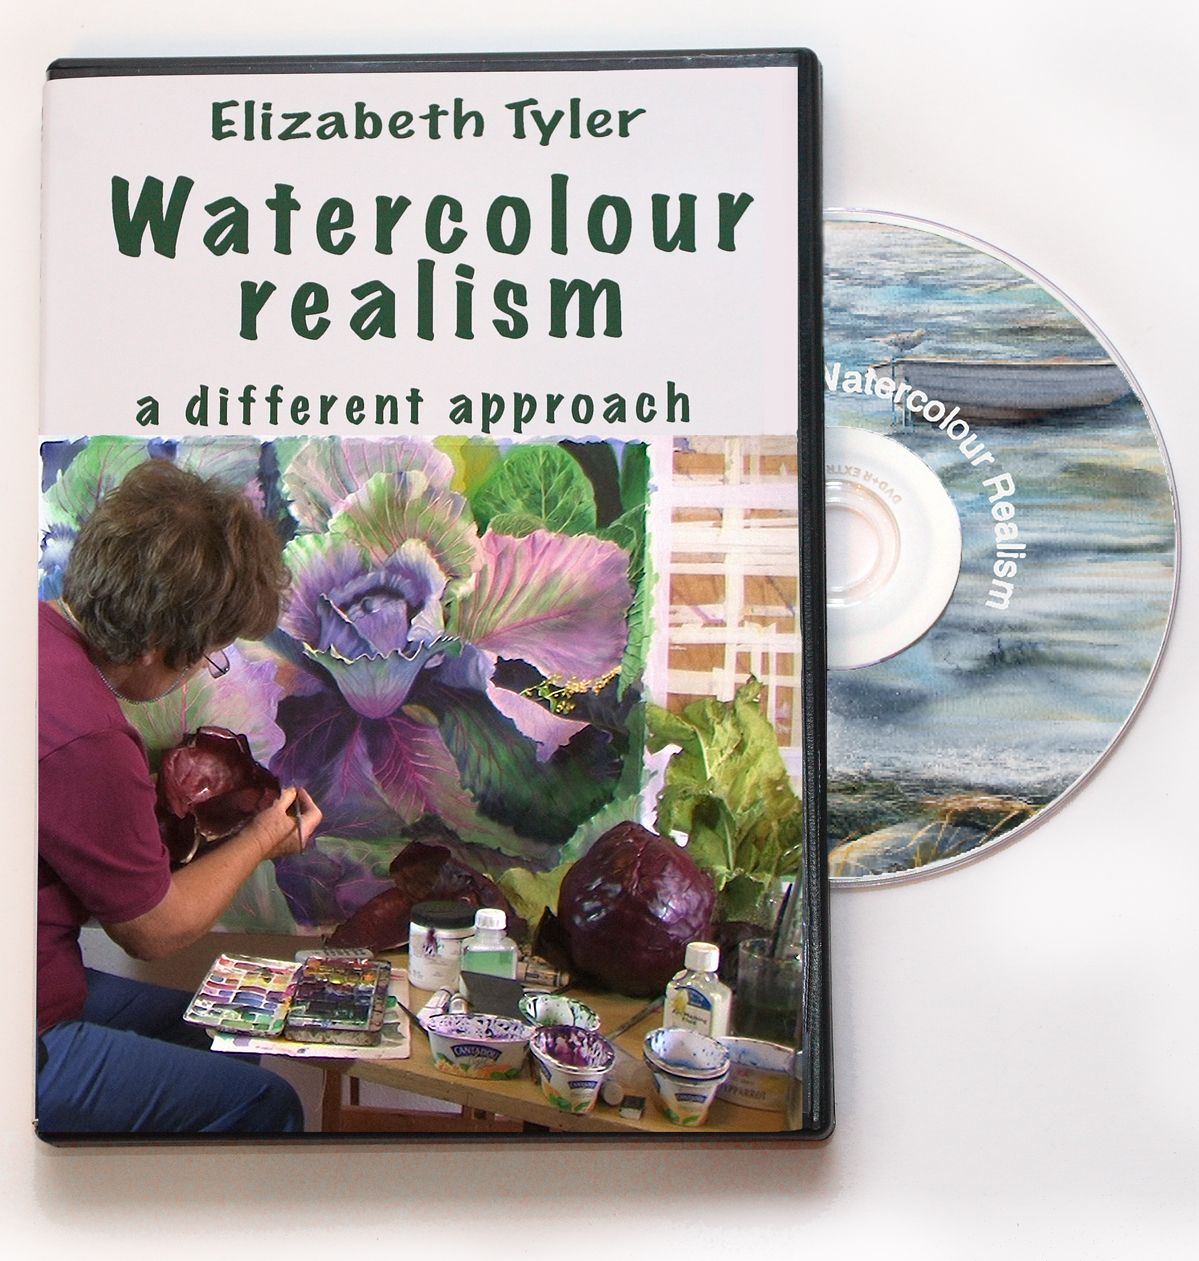 Her book is really good too! Both available at http://www.elizabethtyler.com/